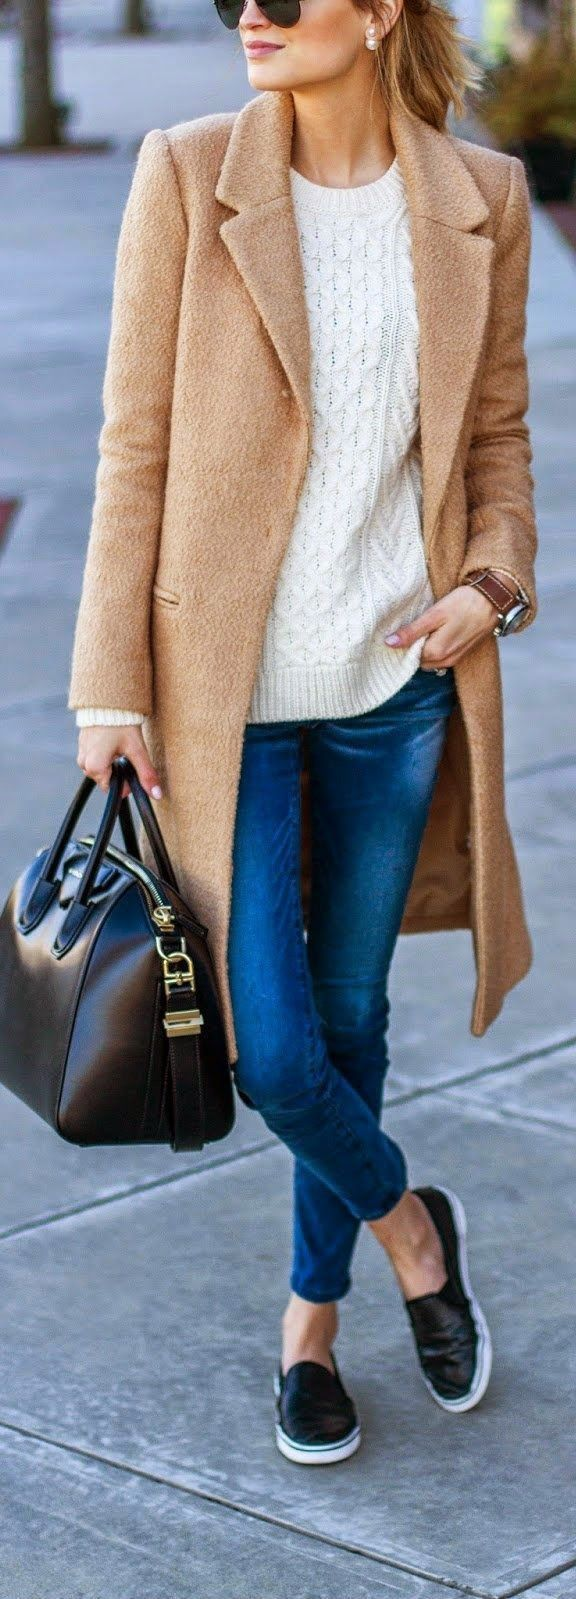 SPORTY CHIC - Coat in Brushed Fabric   Pilcro Serif Sateen Jeans   Classic Cable Knit Sweater   Steve Madden Sneaker / Little Blonde Book